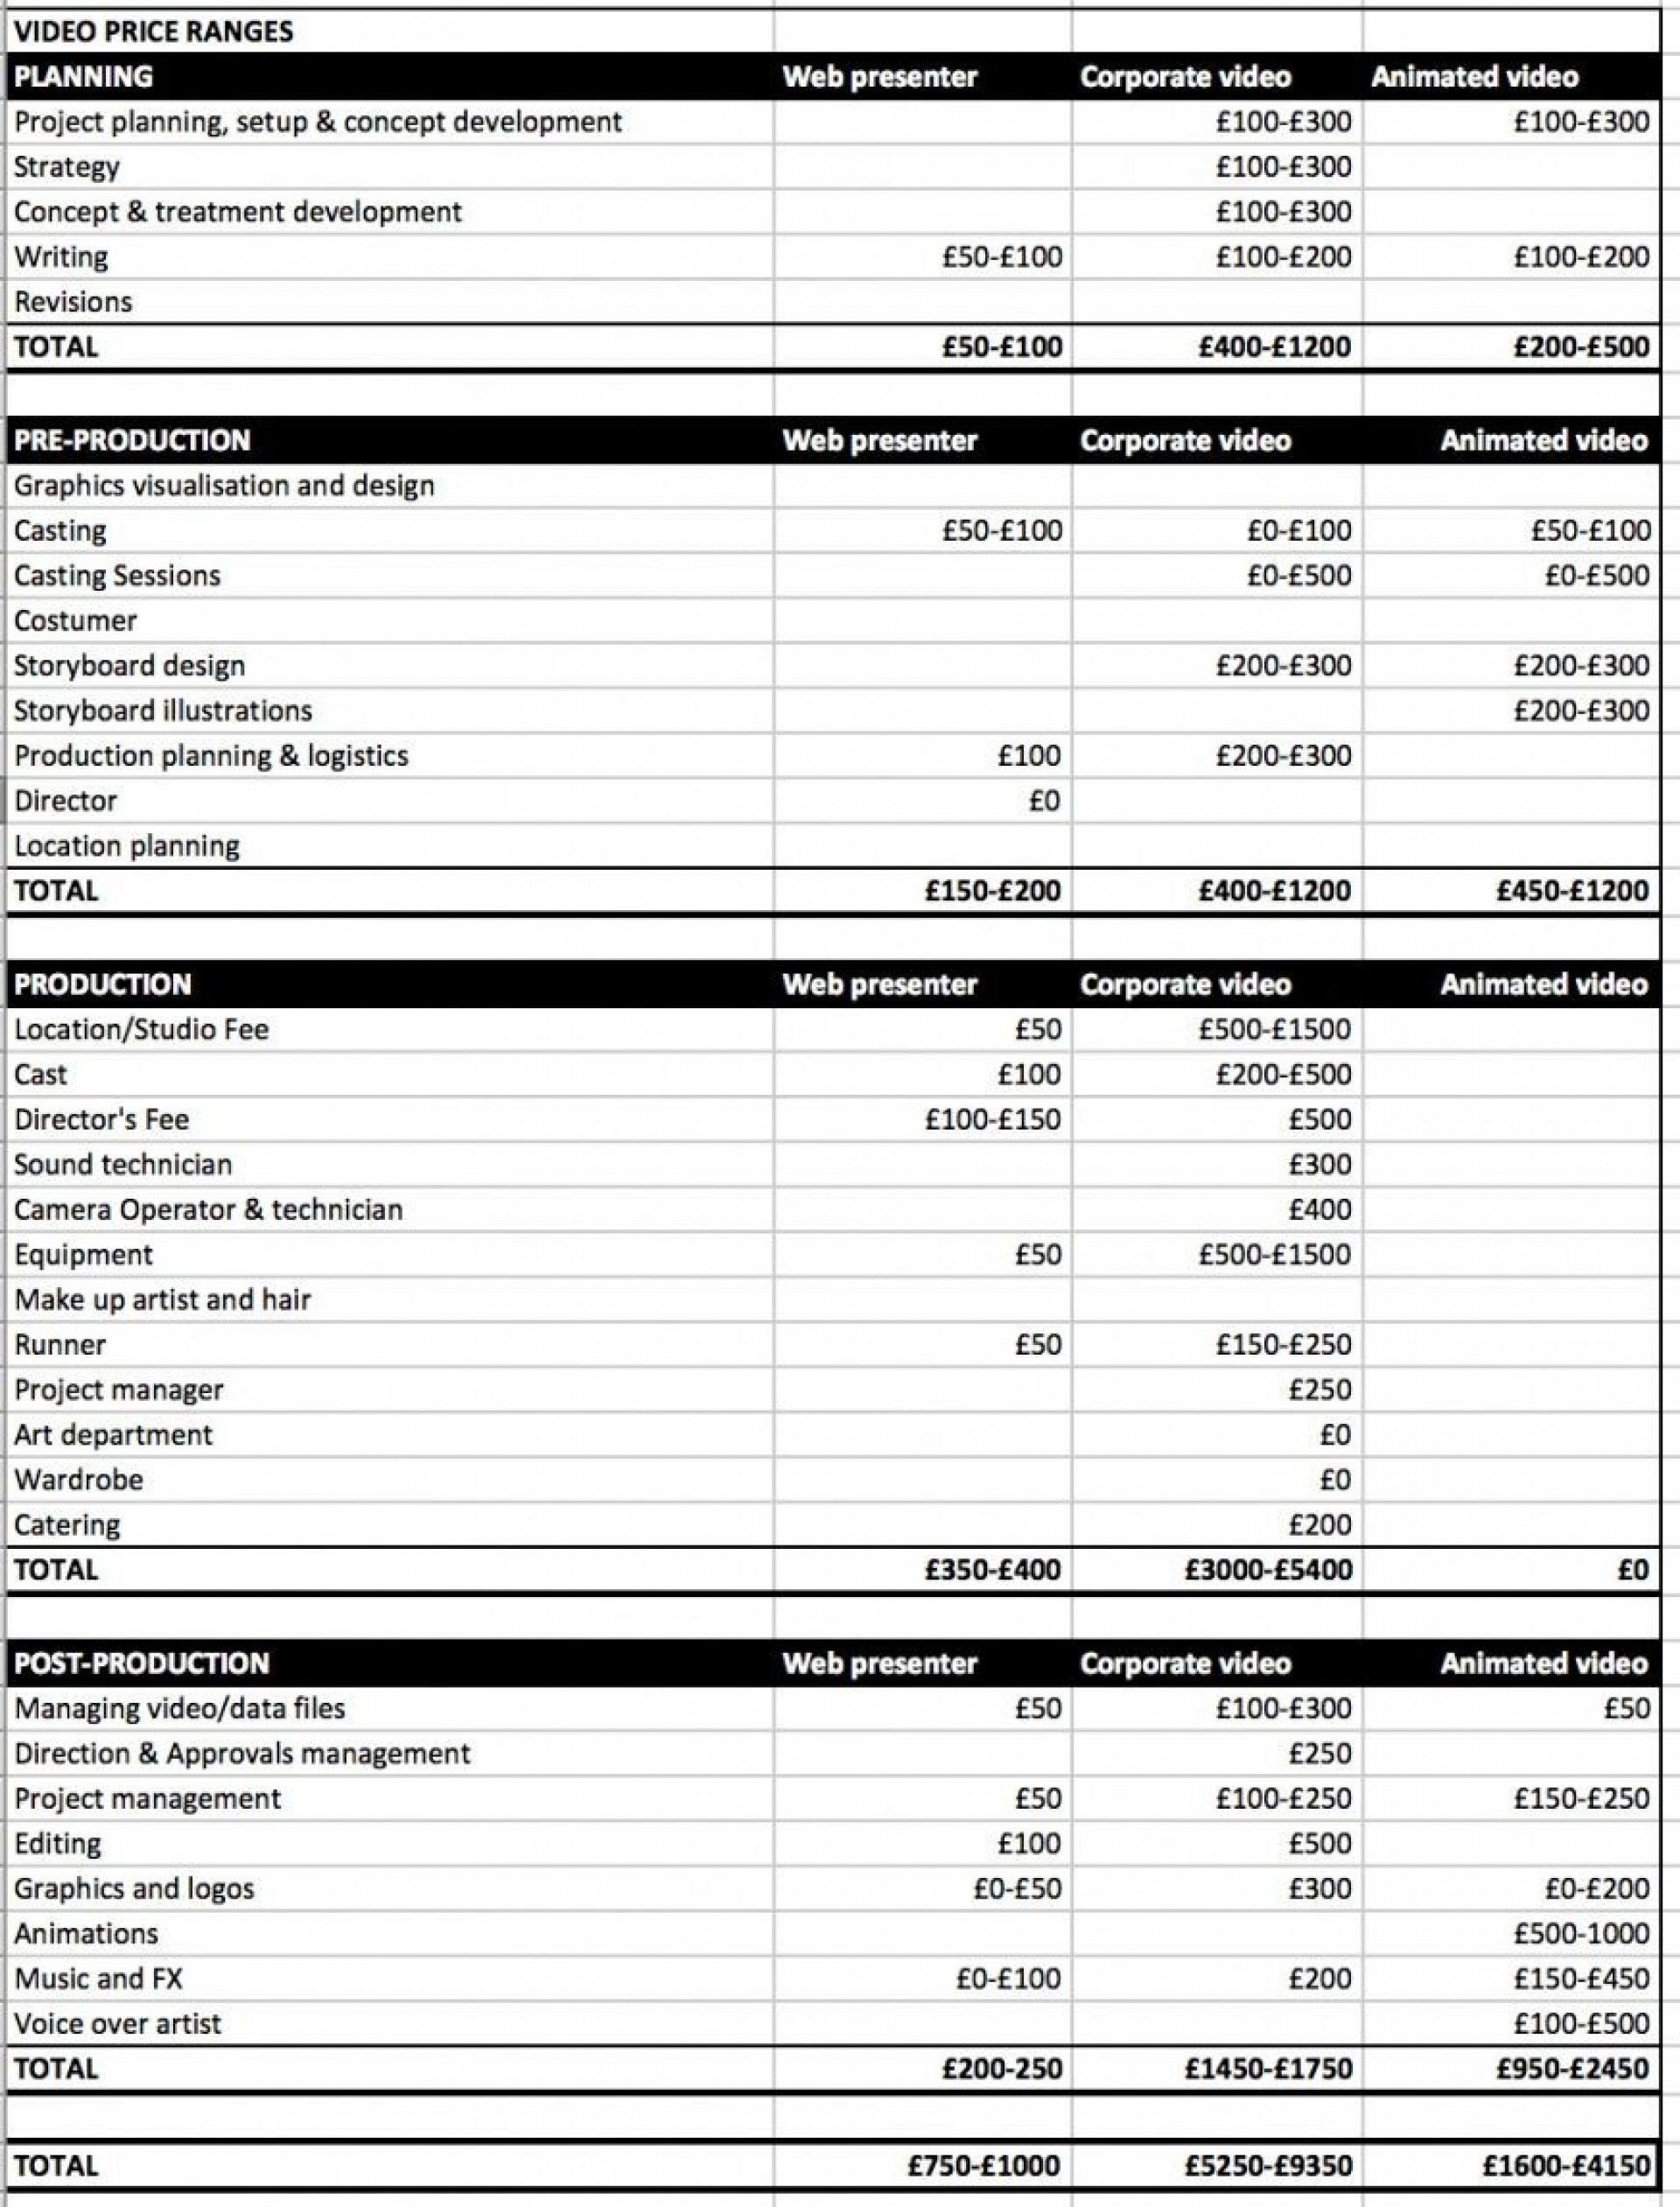 008 Formidable Video Production Budget Template Design  Example Excel Sample1920